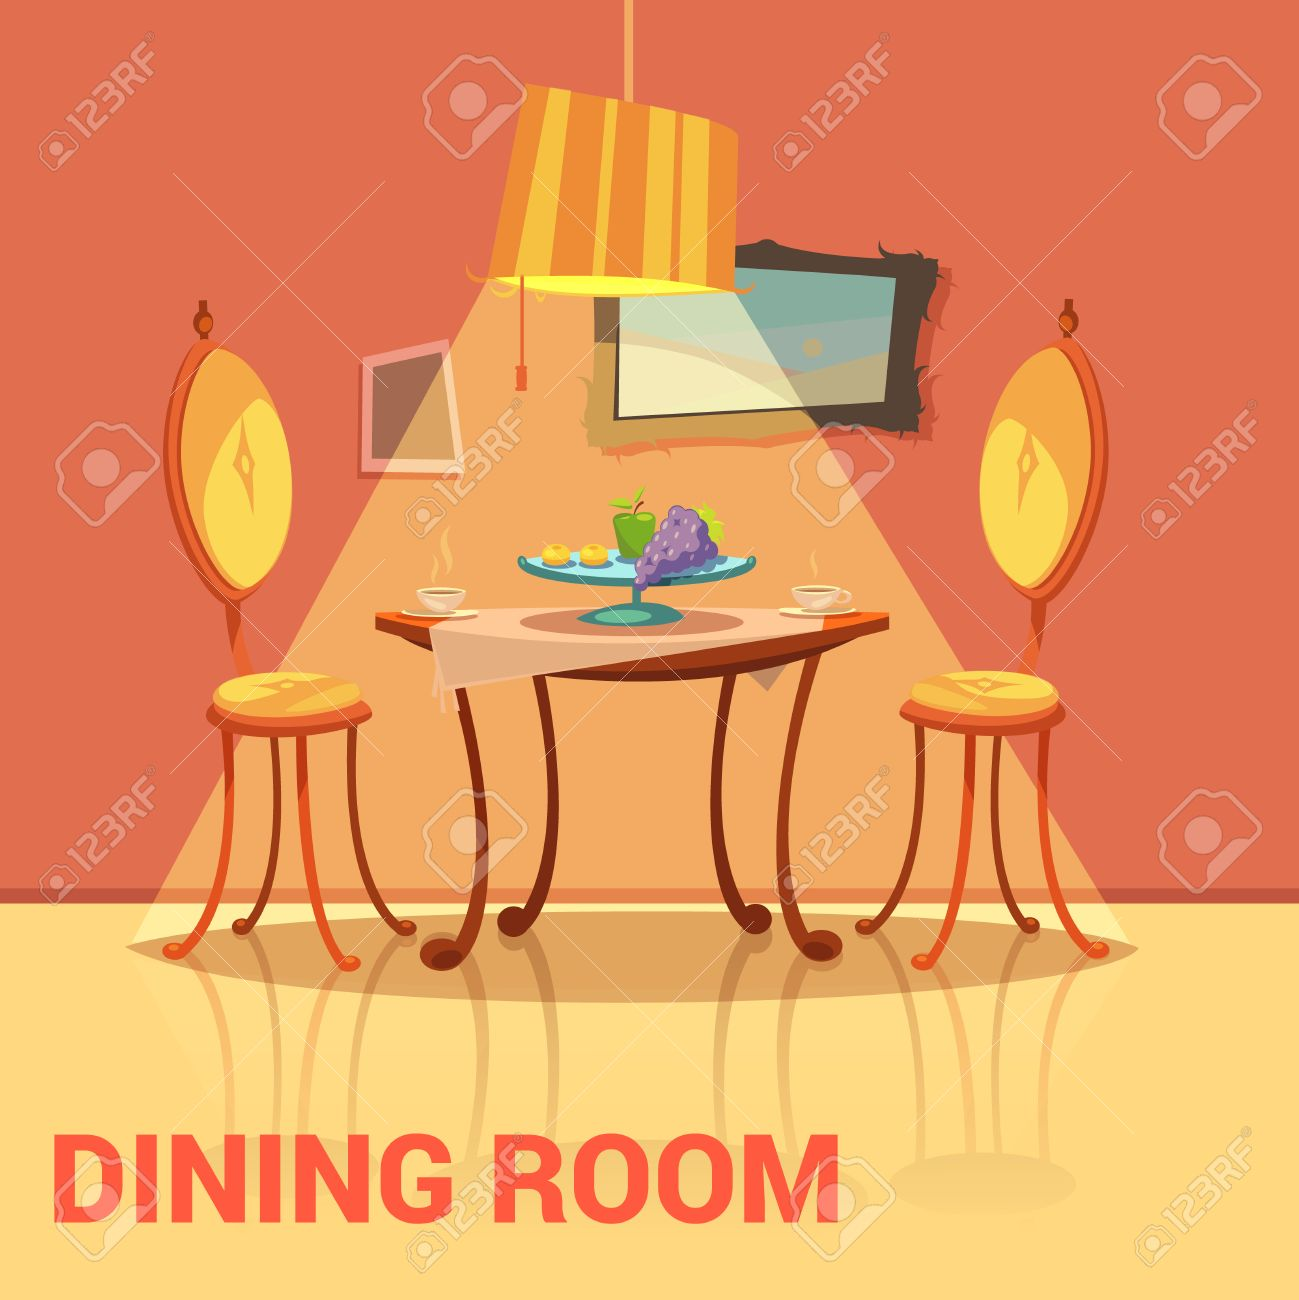 Dining Room Retro Design With Table Chairs And Picture Cartoon